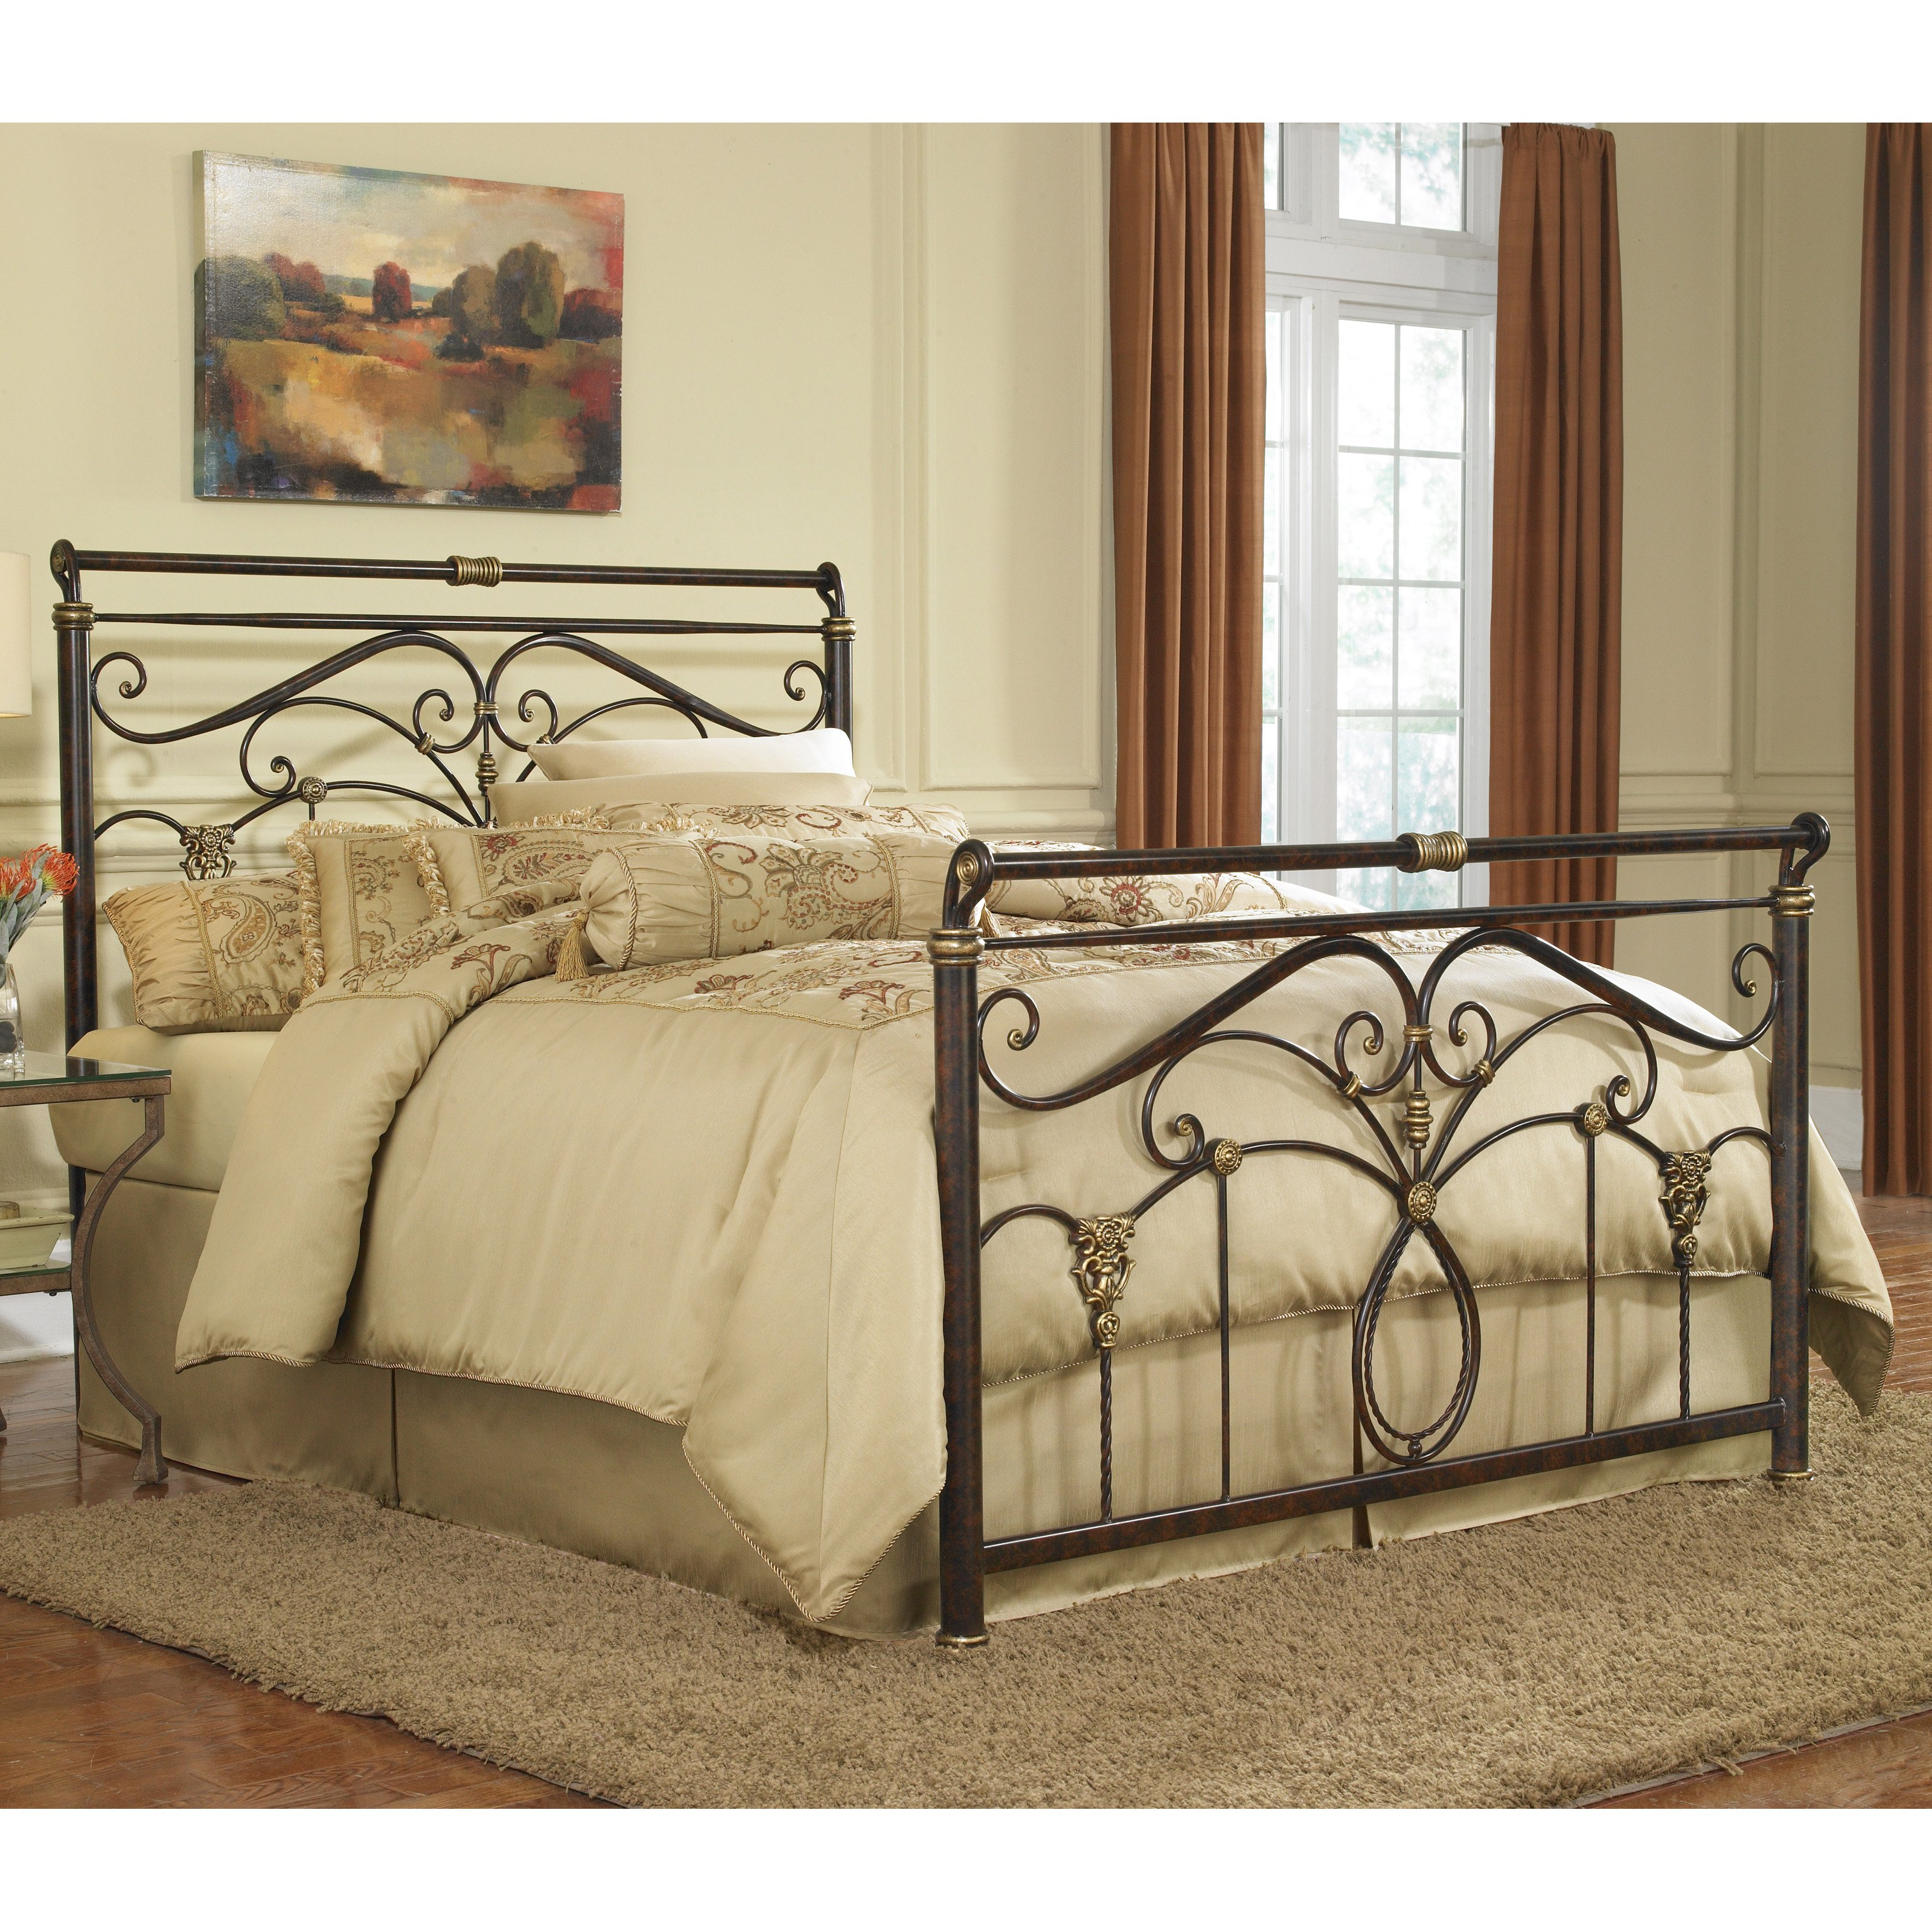 Fashion Bed Group Lucinda Sleigh Bed by Fashion Bed Group